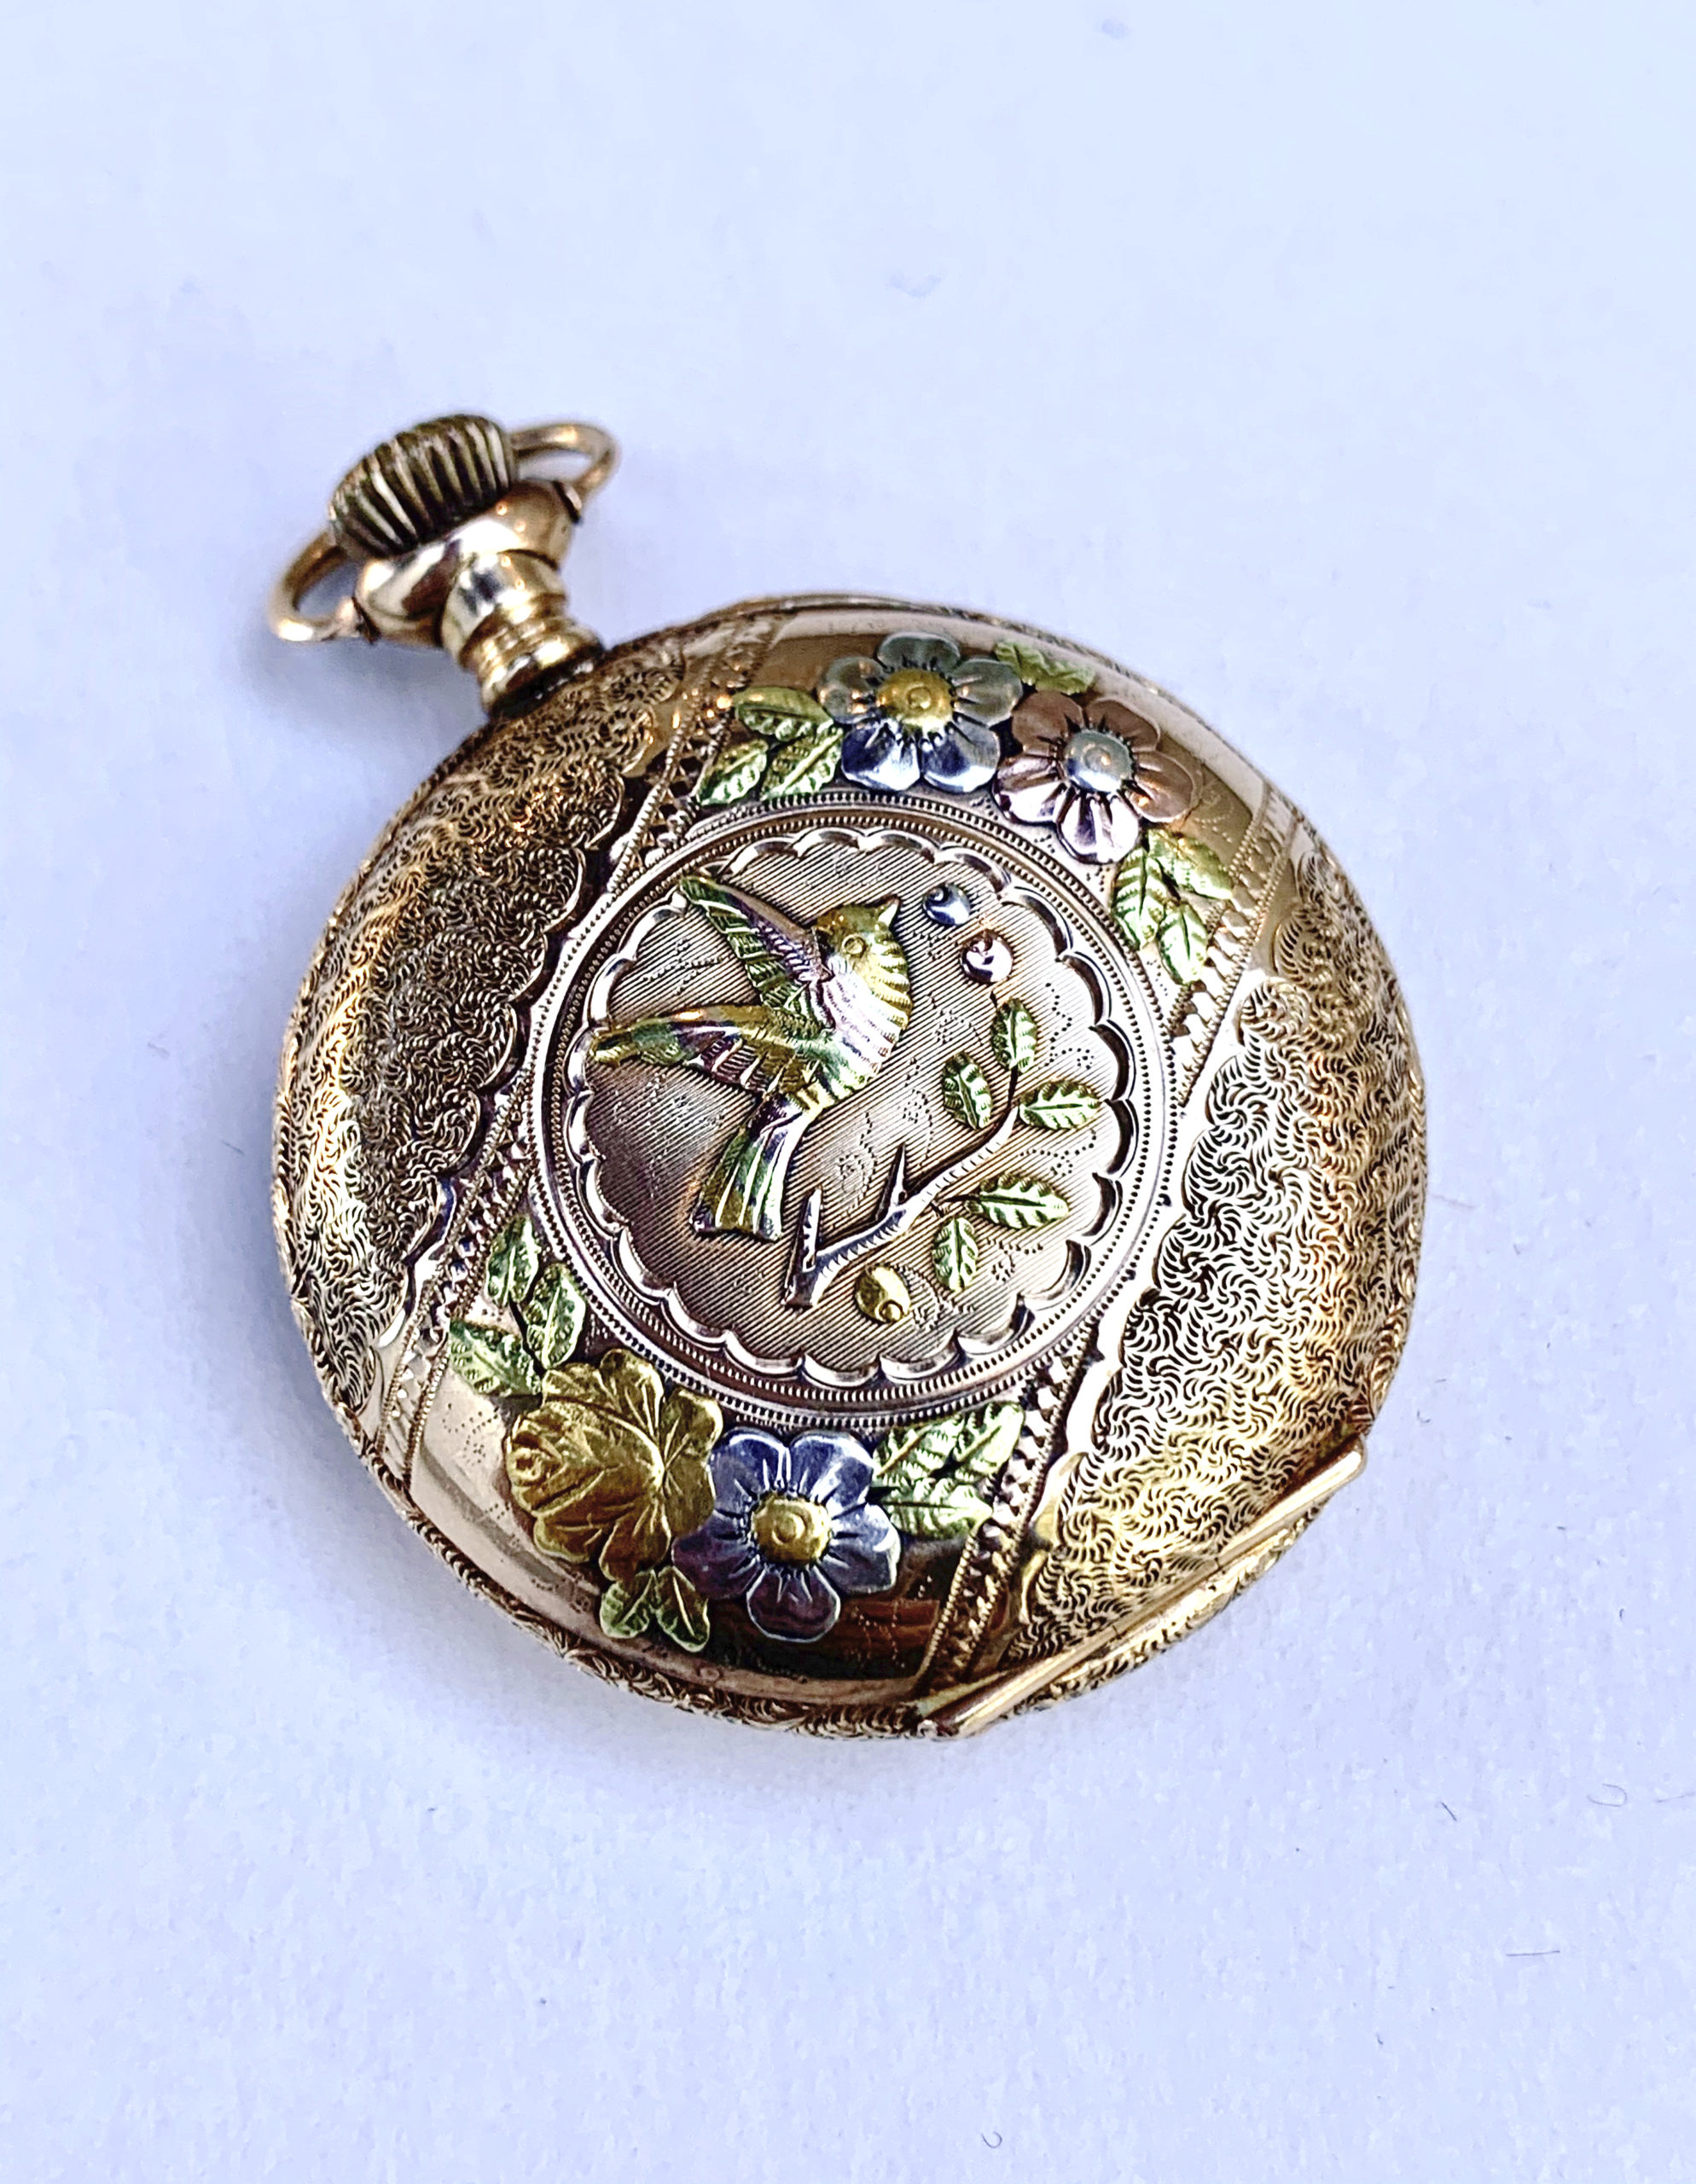 Pocket watch in gold with embossed bird and twig